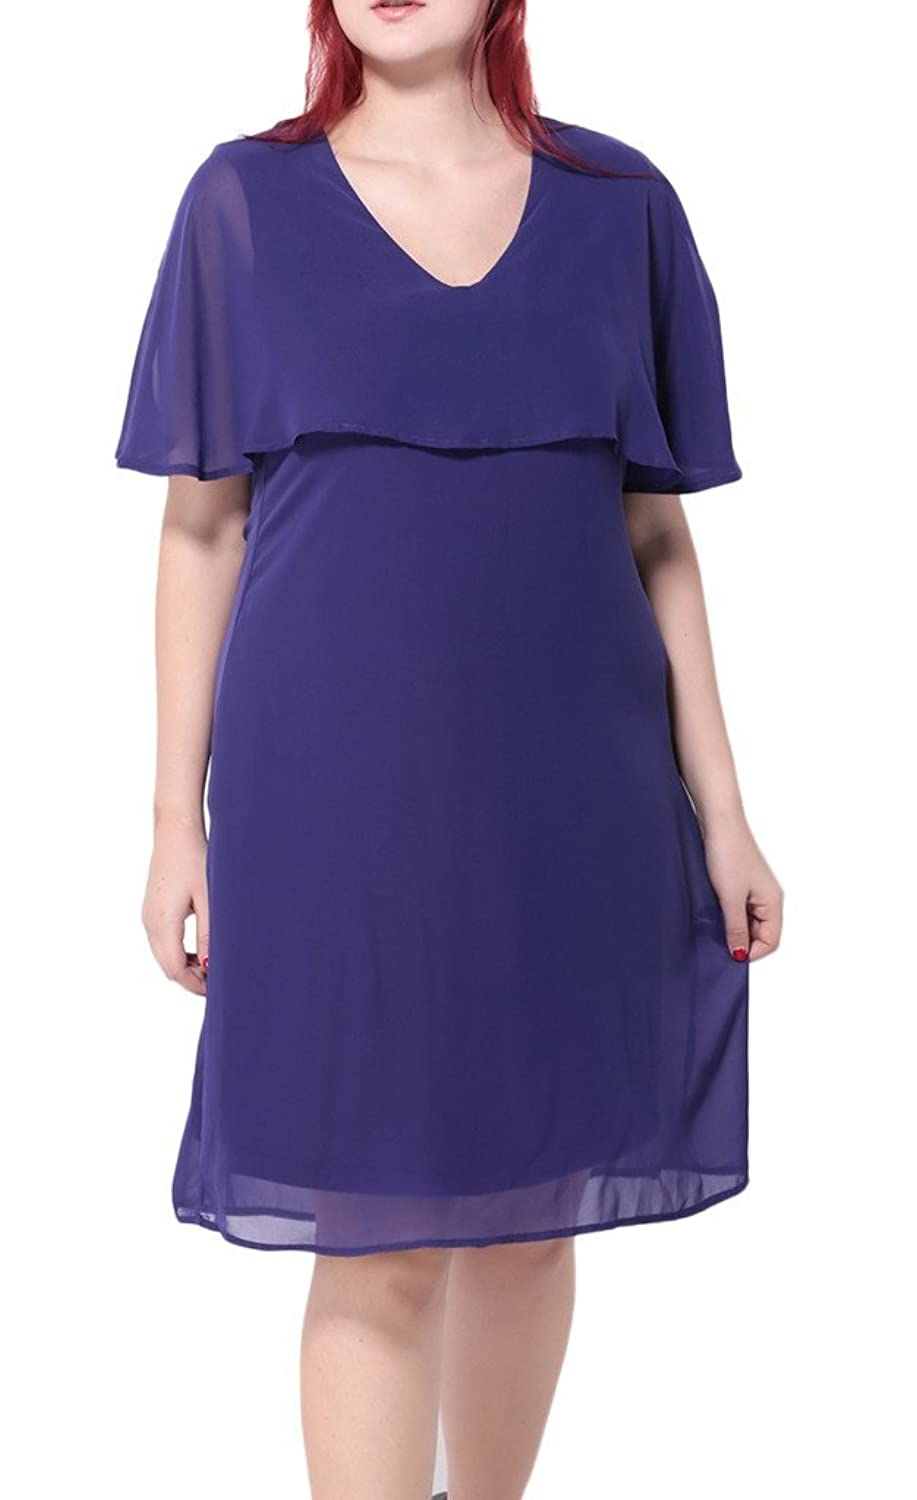 Bigood Plus Size V Kragen Kurz Armel Damen Minikleid Cocktailkleid Party Kleid Violett